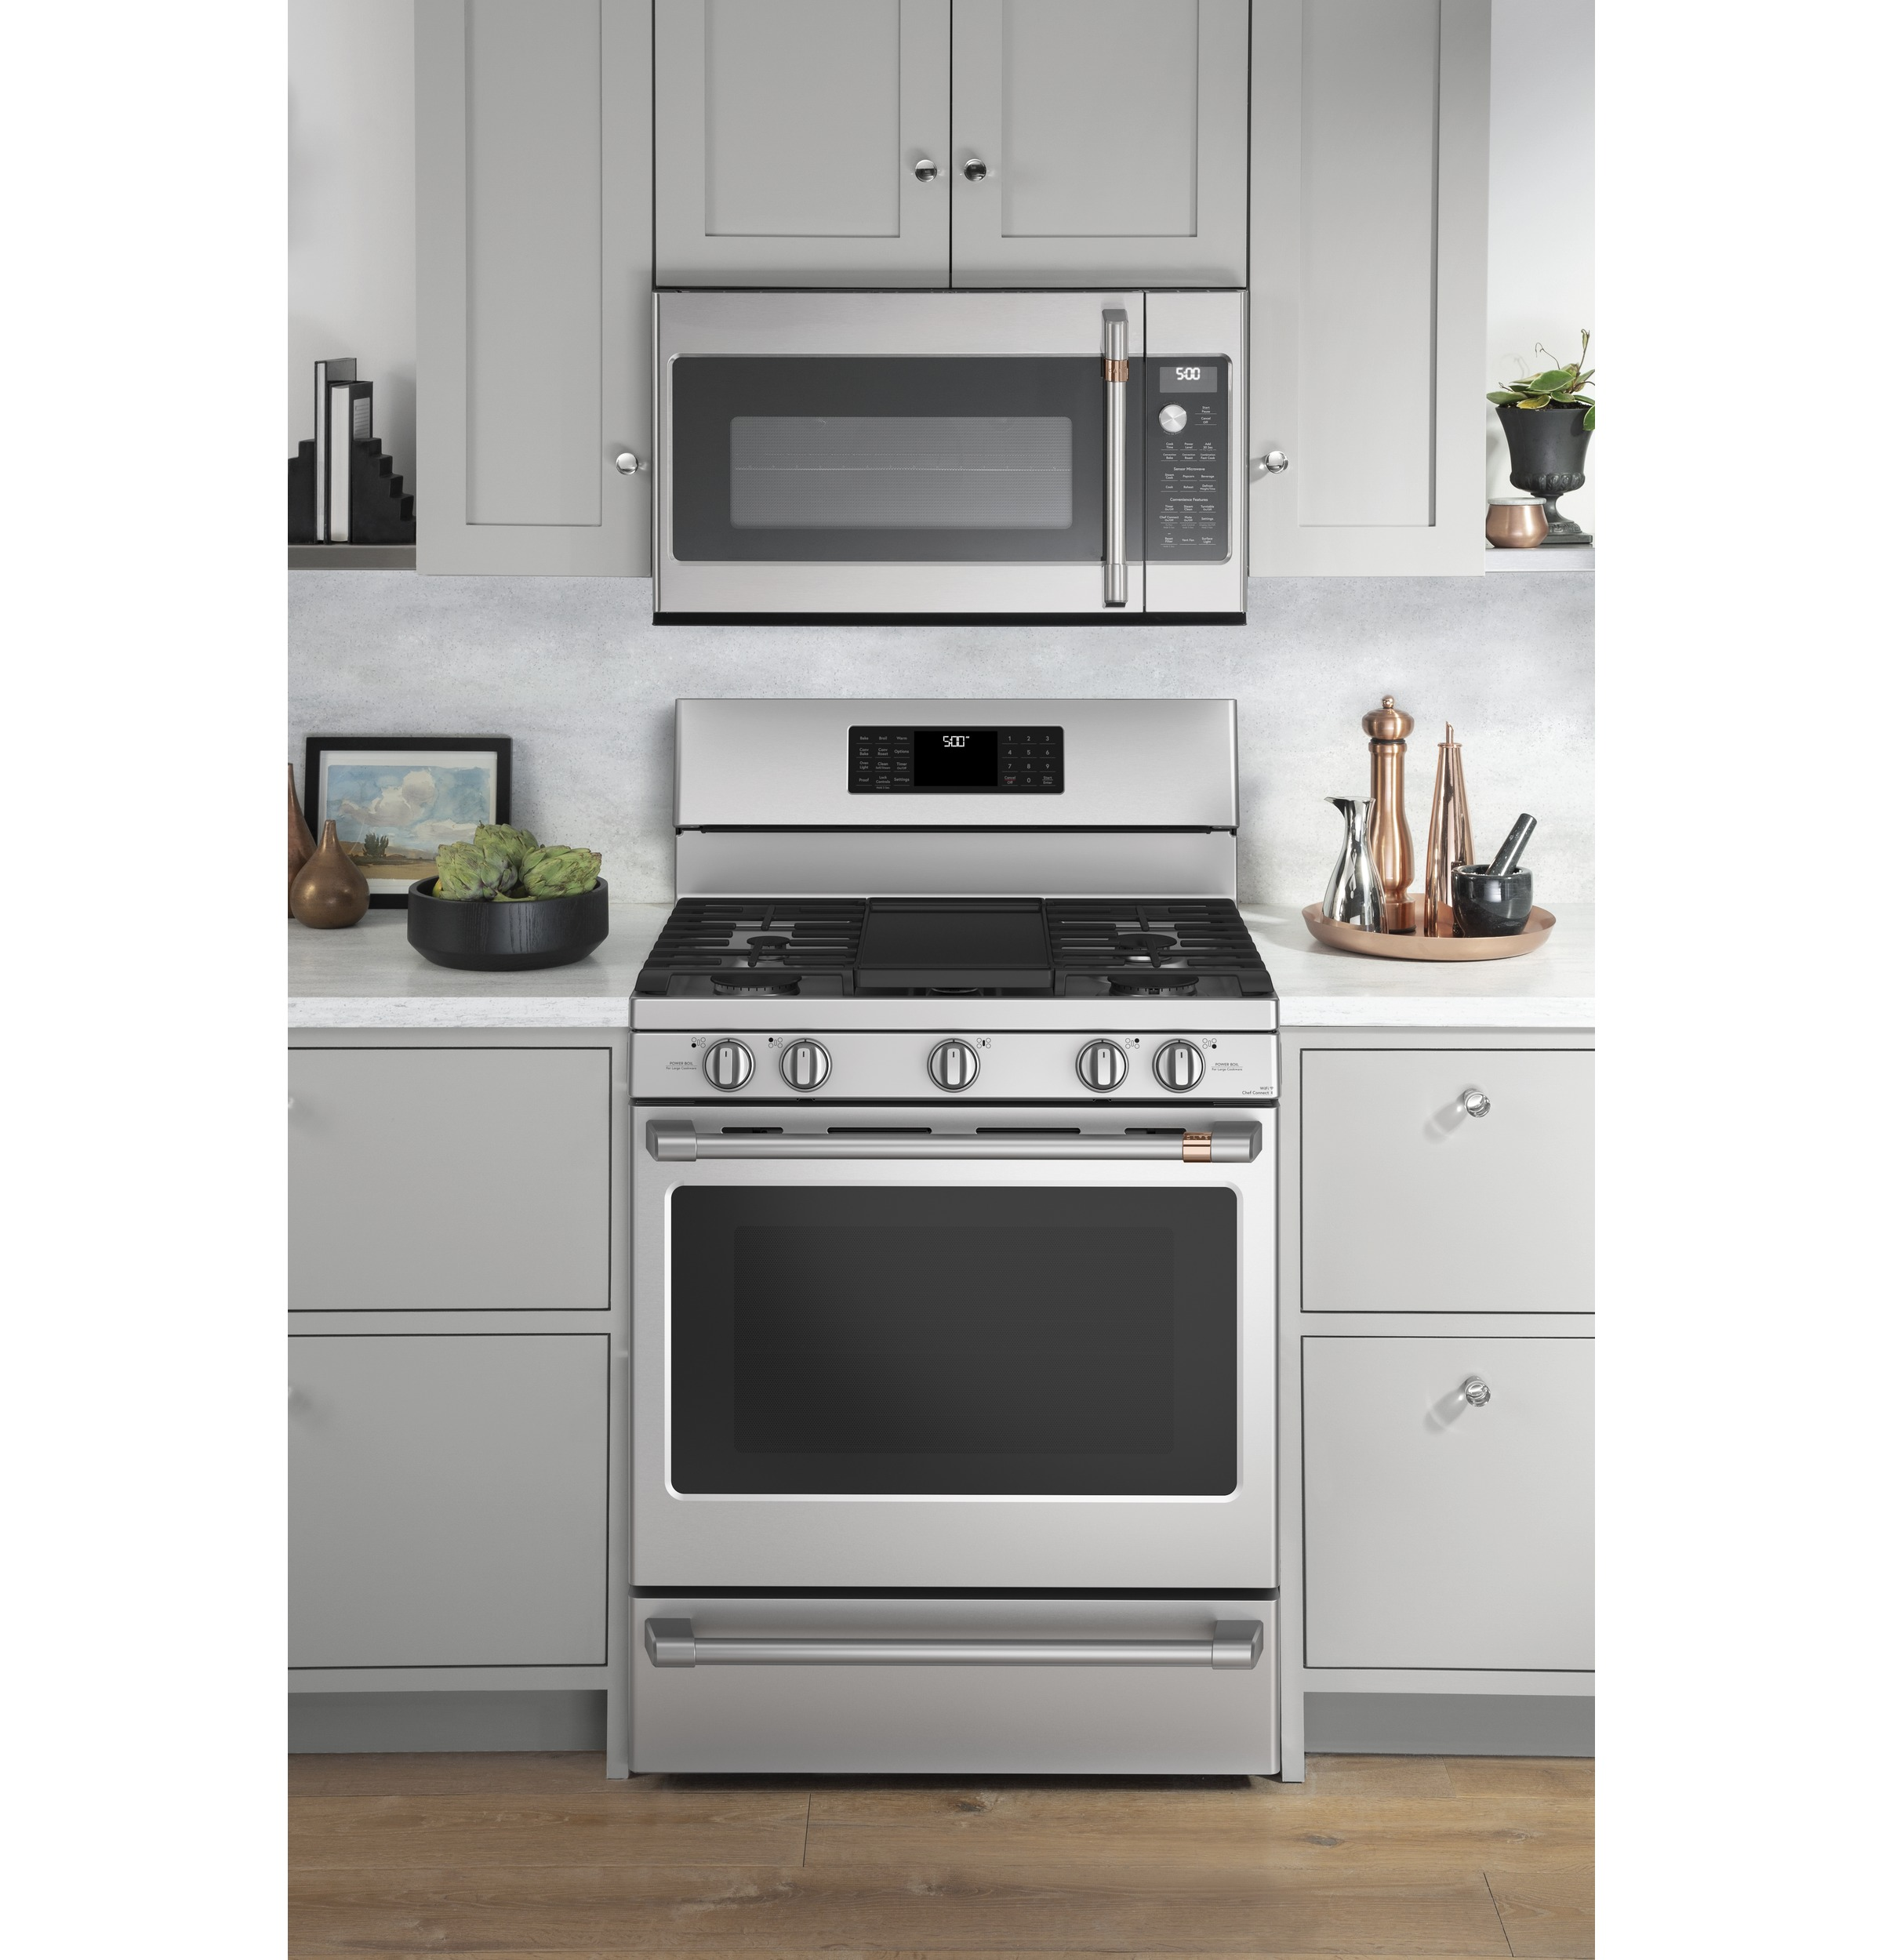 "Model: CGB500P2MS1 | Cafe Café™ 30"" Smart Free-Standing Gas Range with Convection"